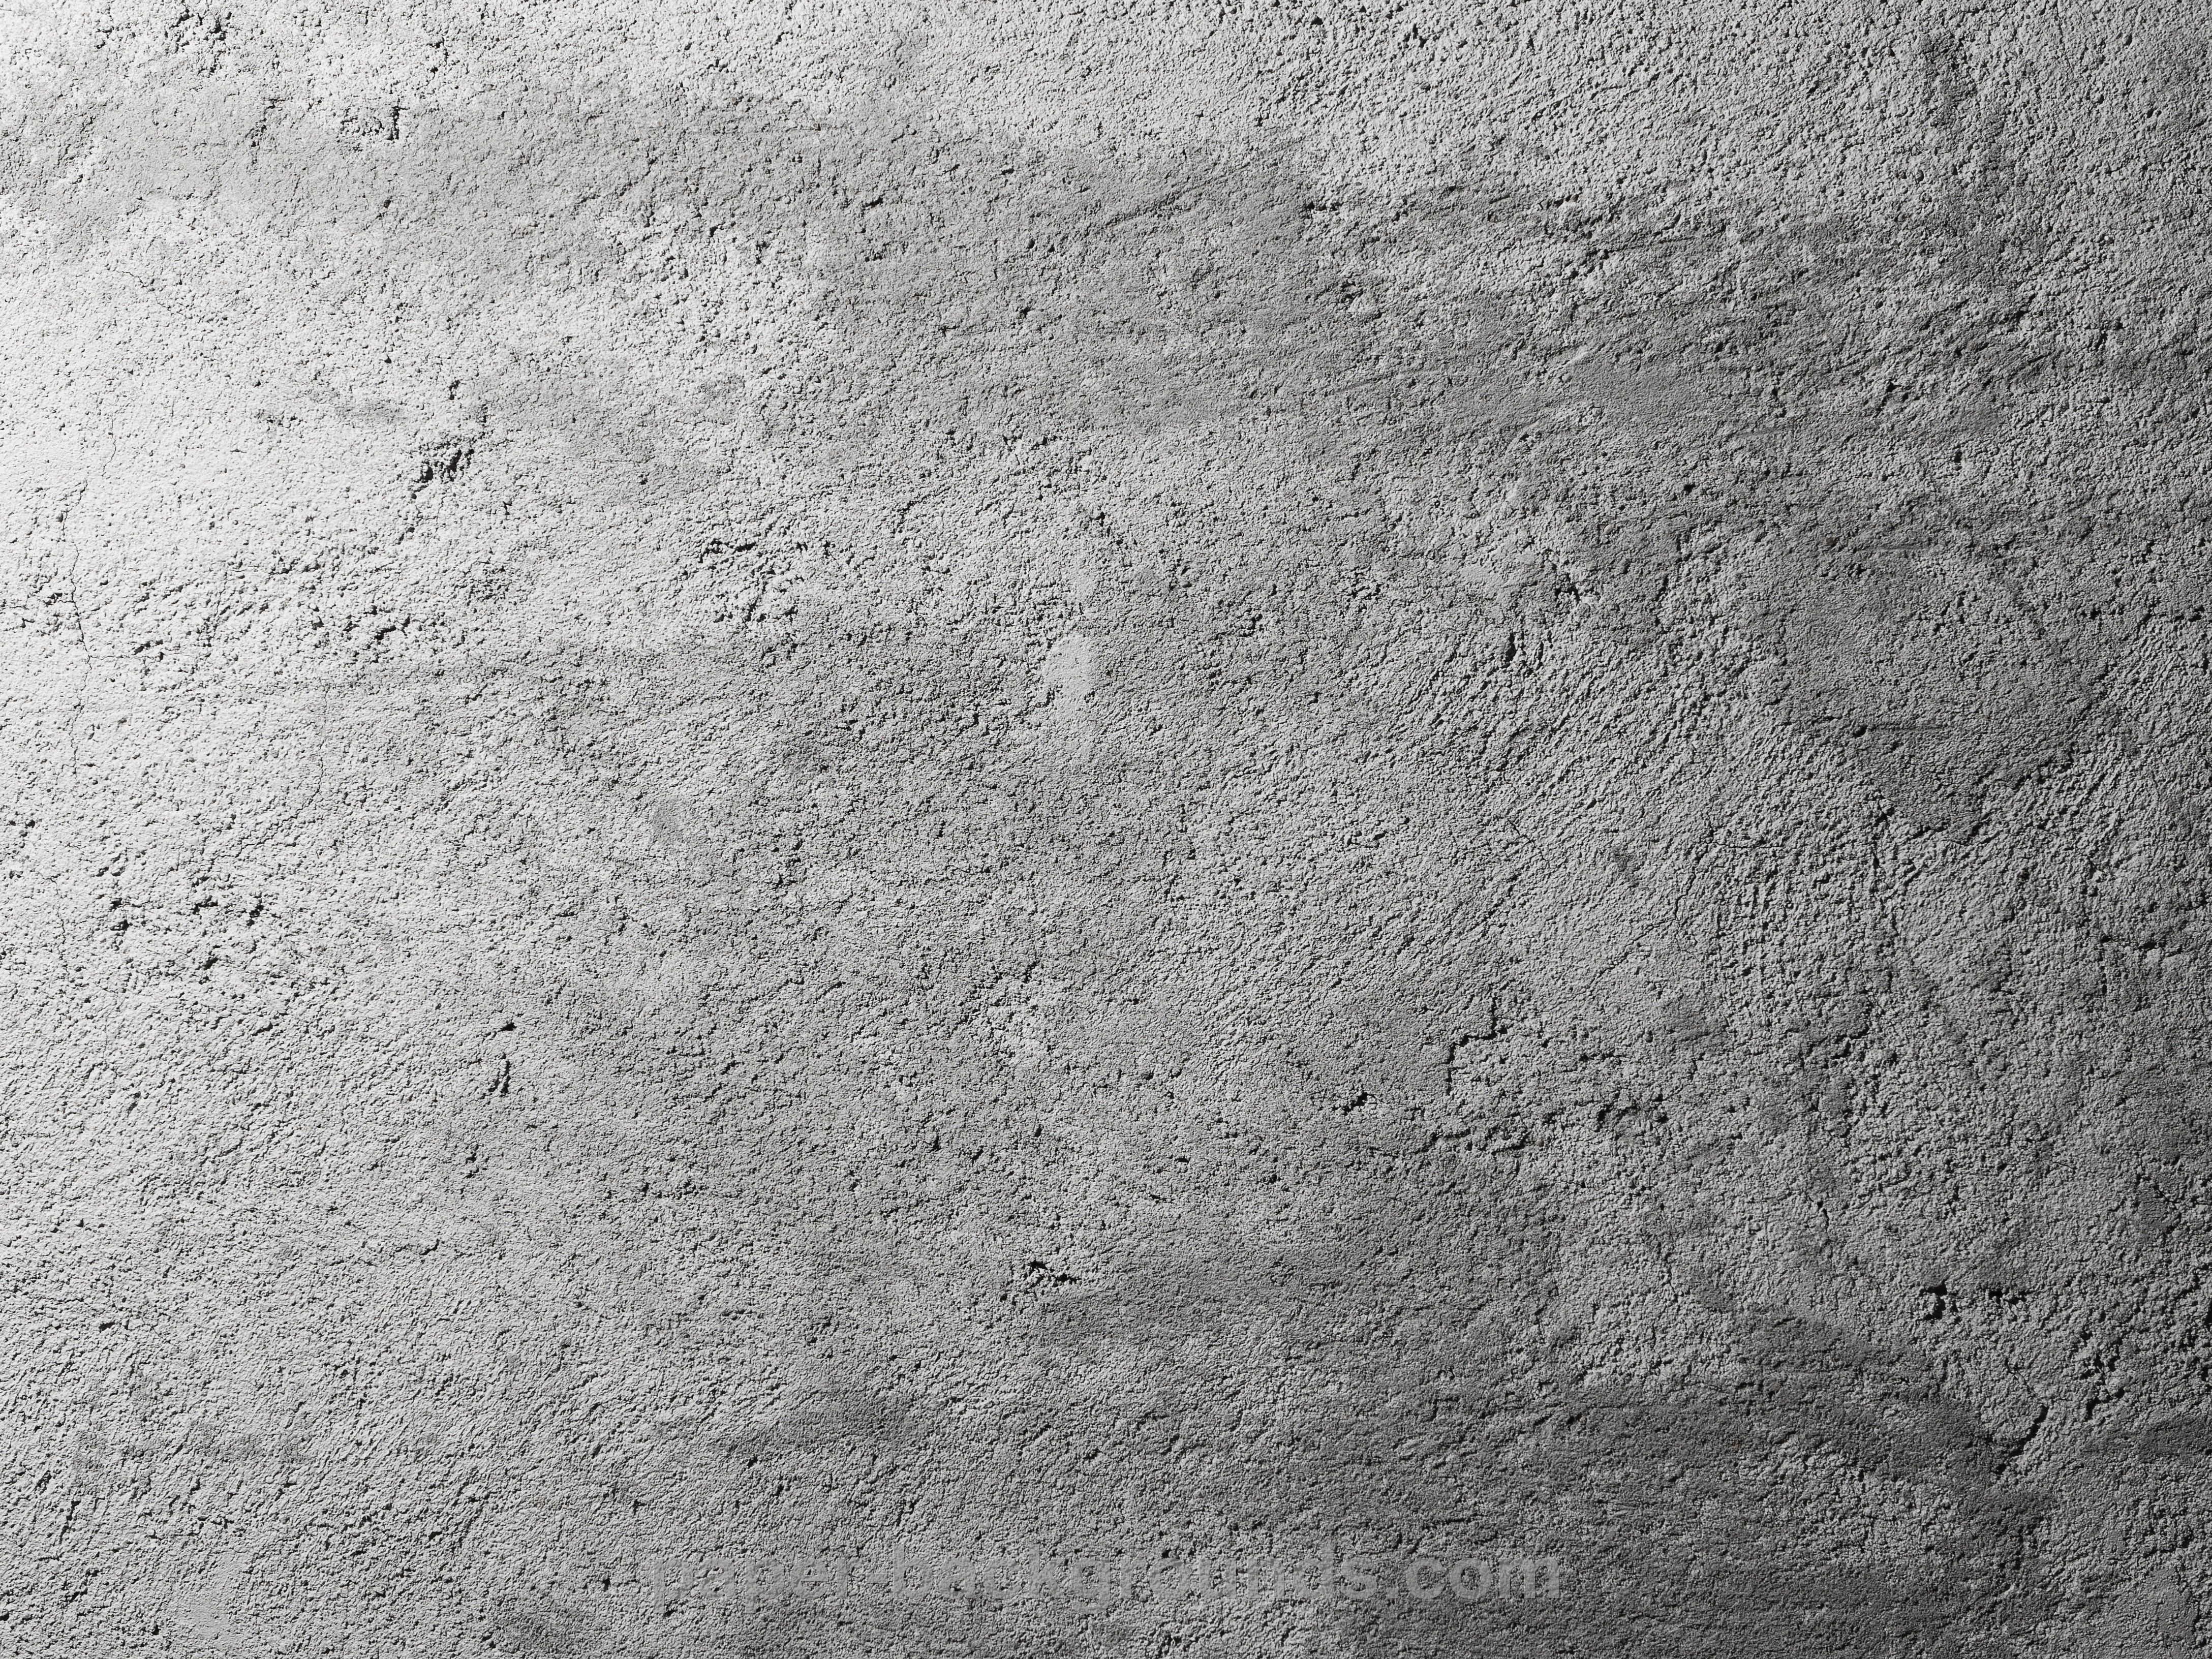 Dark Concrete Floor Texture 63 best finitions // concrete images on pinterest | concrete floor